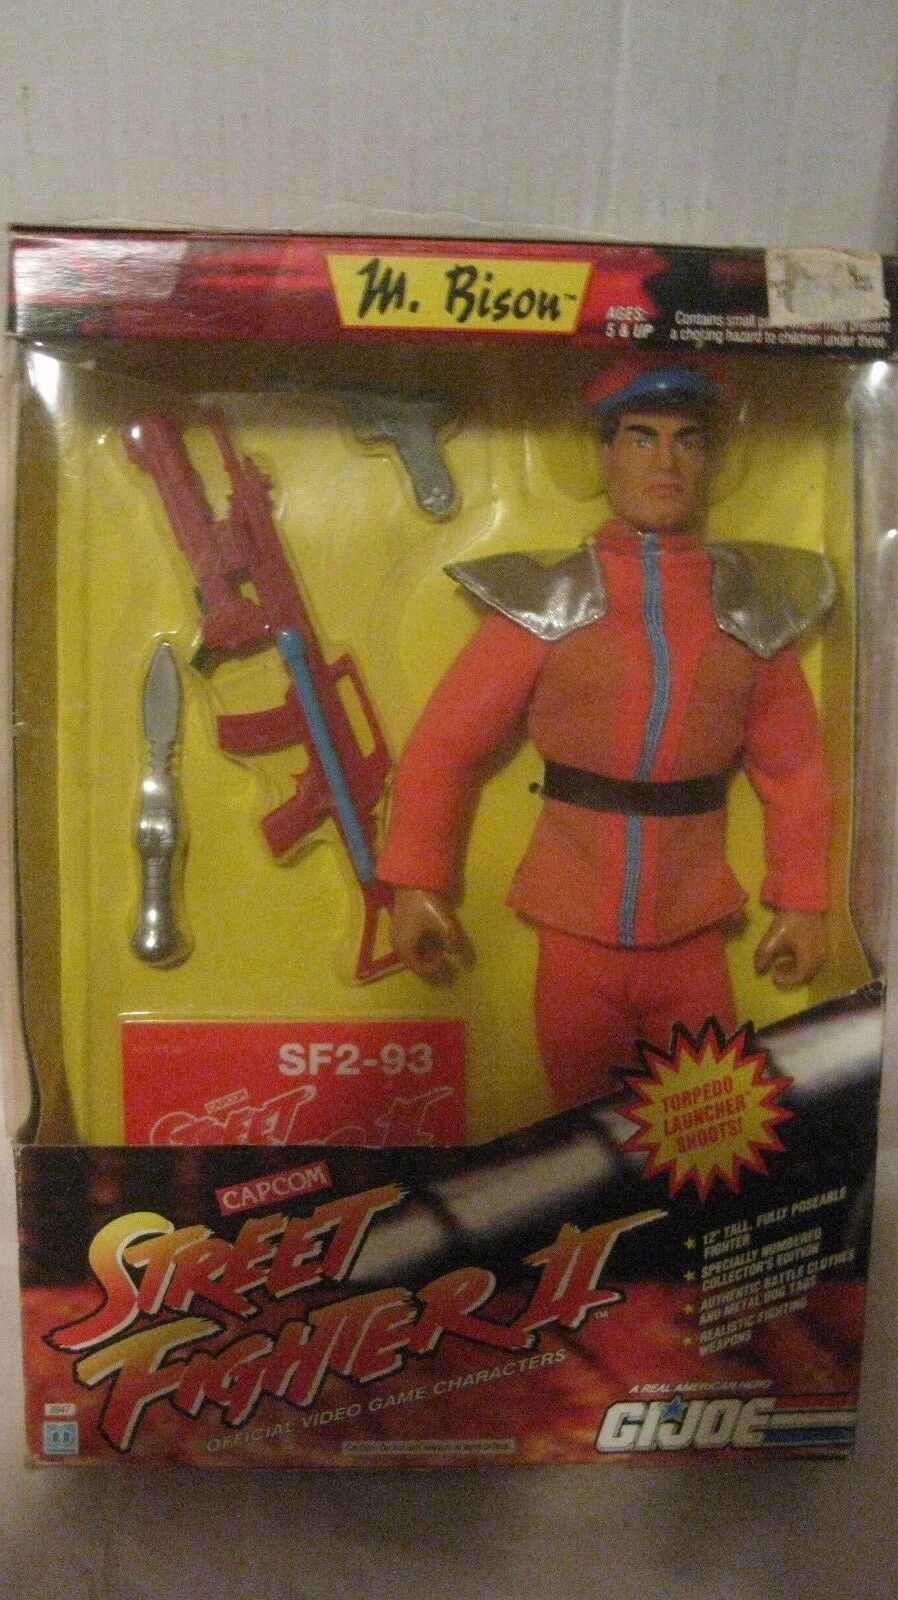 Street Fighter 2 Mr. Bison G.I. Joe Video Game Characters By Capcom 1993 NEW t58